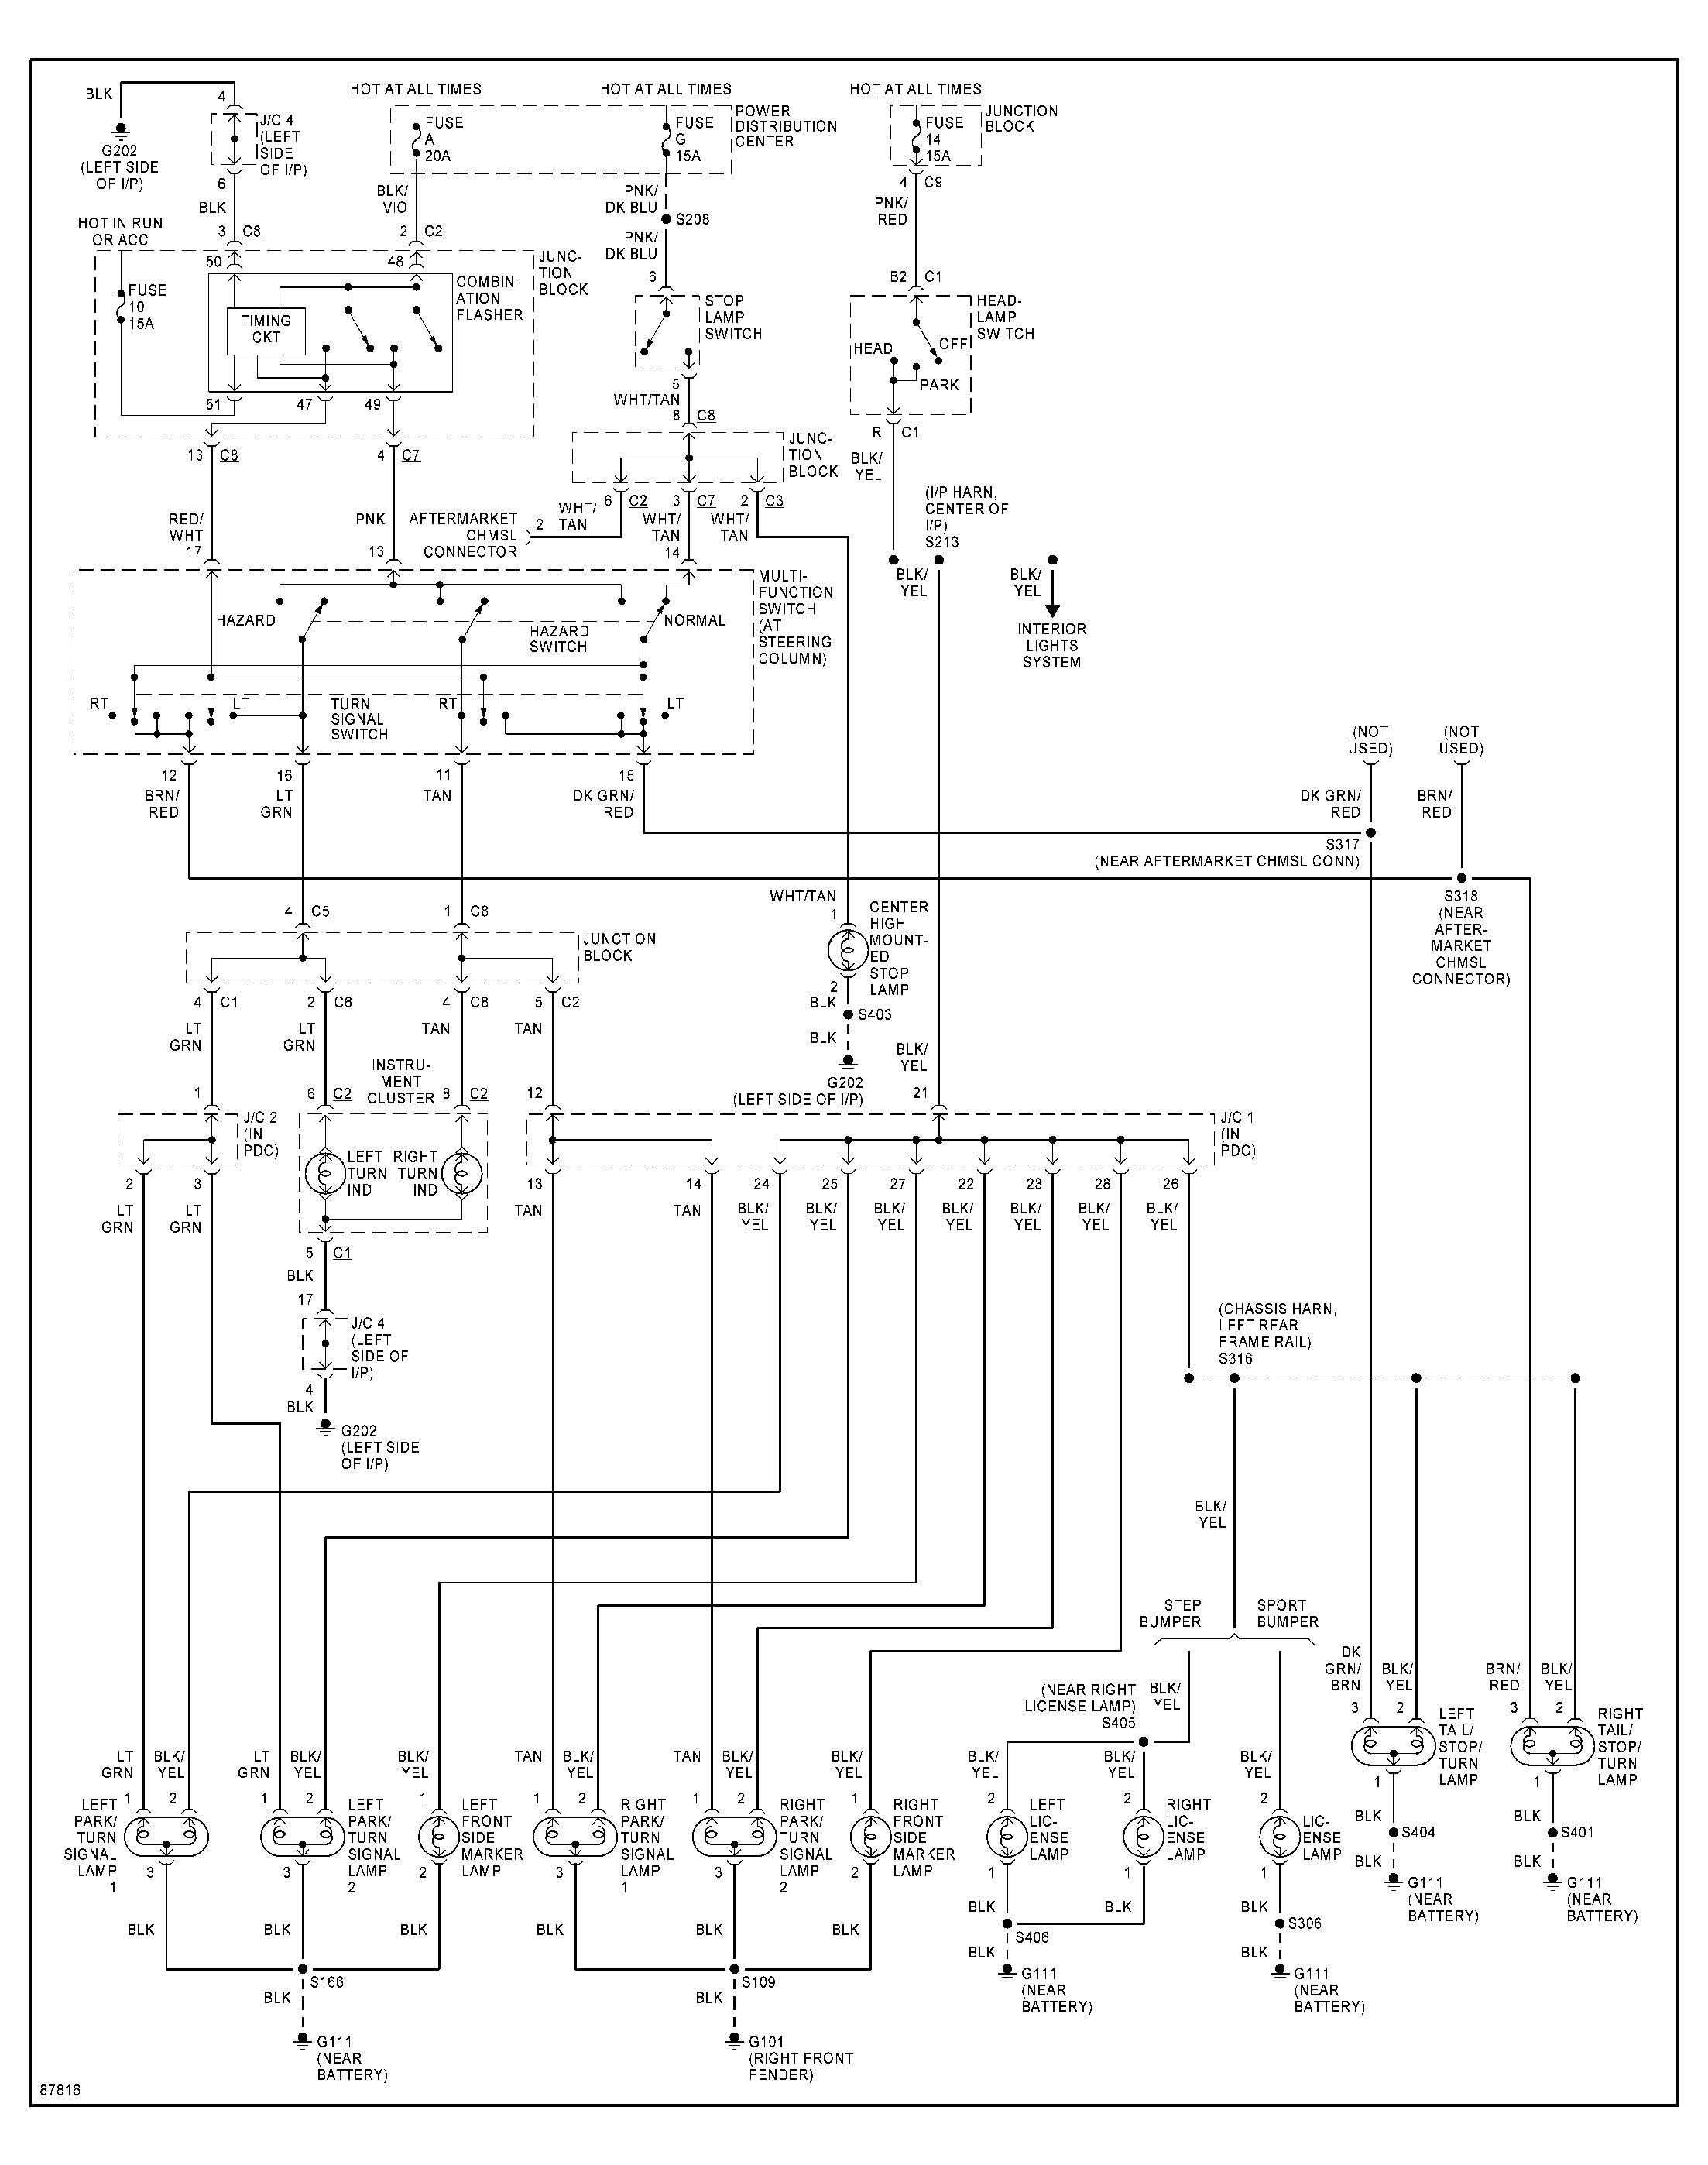 Infiniti Qx4 Engine Diagram 2002 Dodge Durango Engine Diagram Worksheet and Wiring Diagram • Of Infiniti Qx4 Engine Diagram